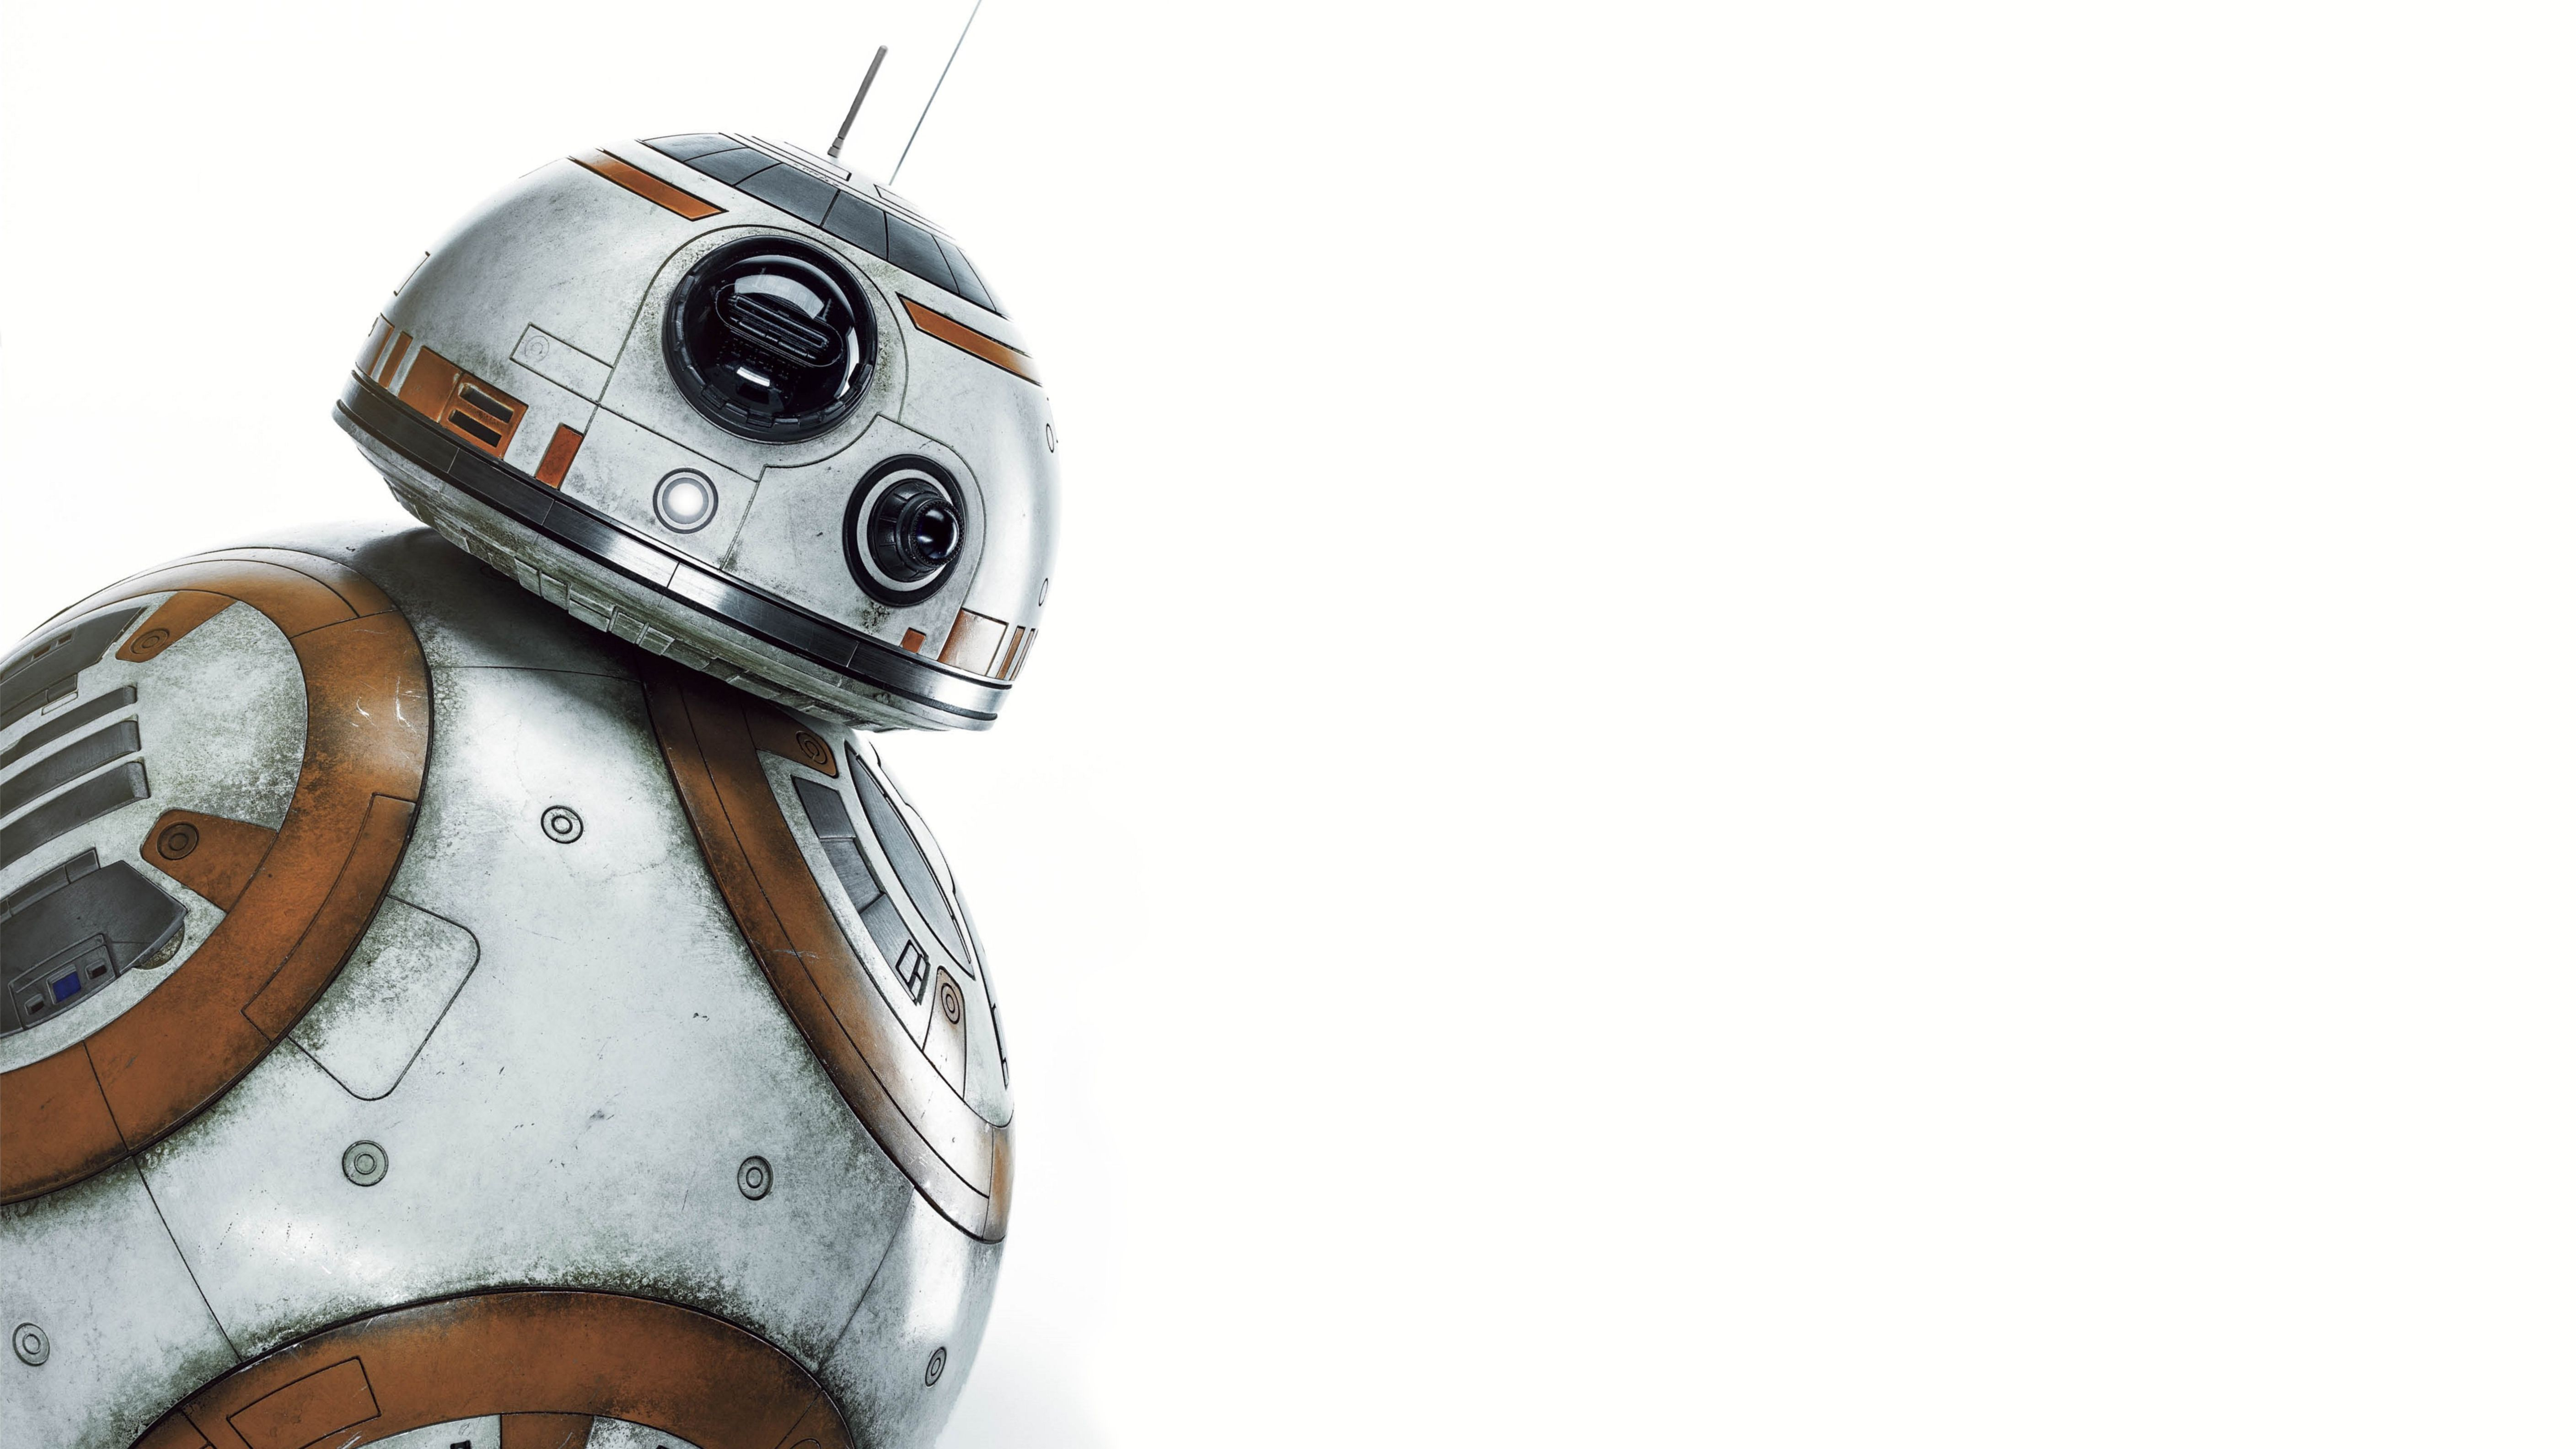 Download free HD Star Wars Bb 8 Droid 4k 5k HD Wallpaper, image